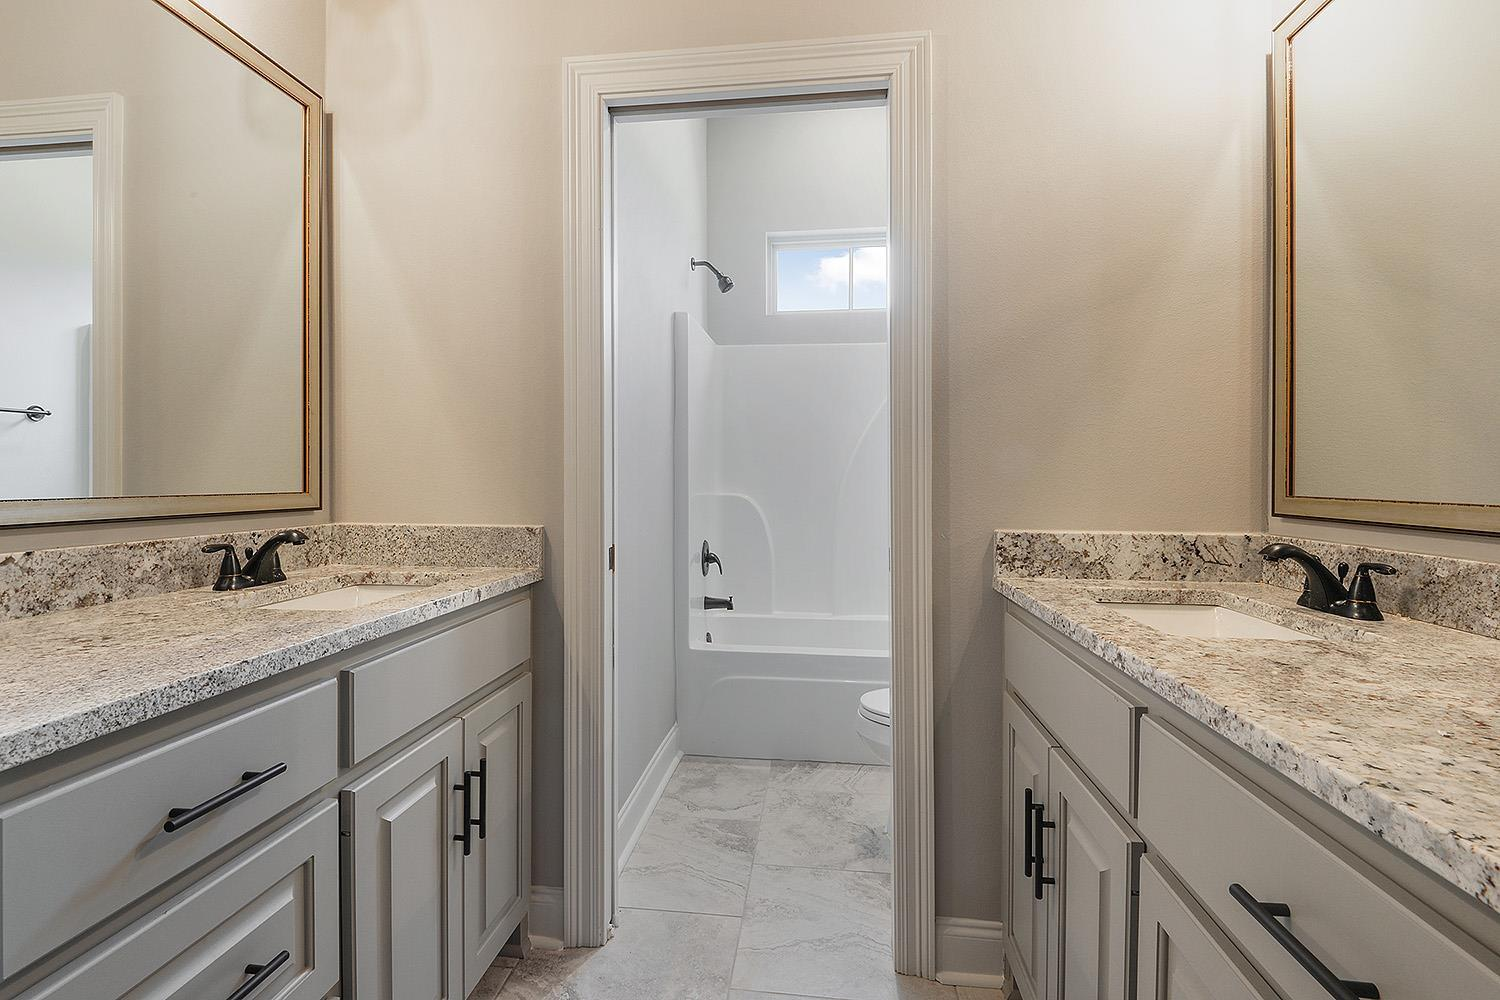 Bathroom featured in the Macon I By Willie & Willie  in Baton Rouge, LA